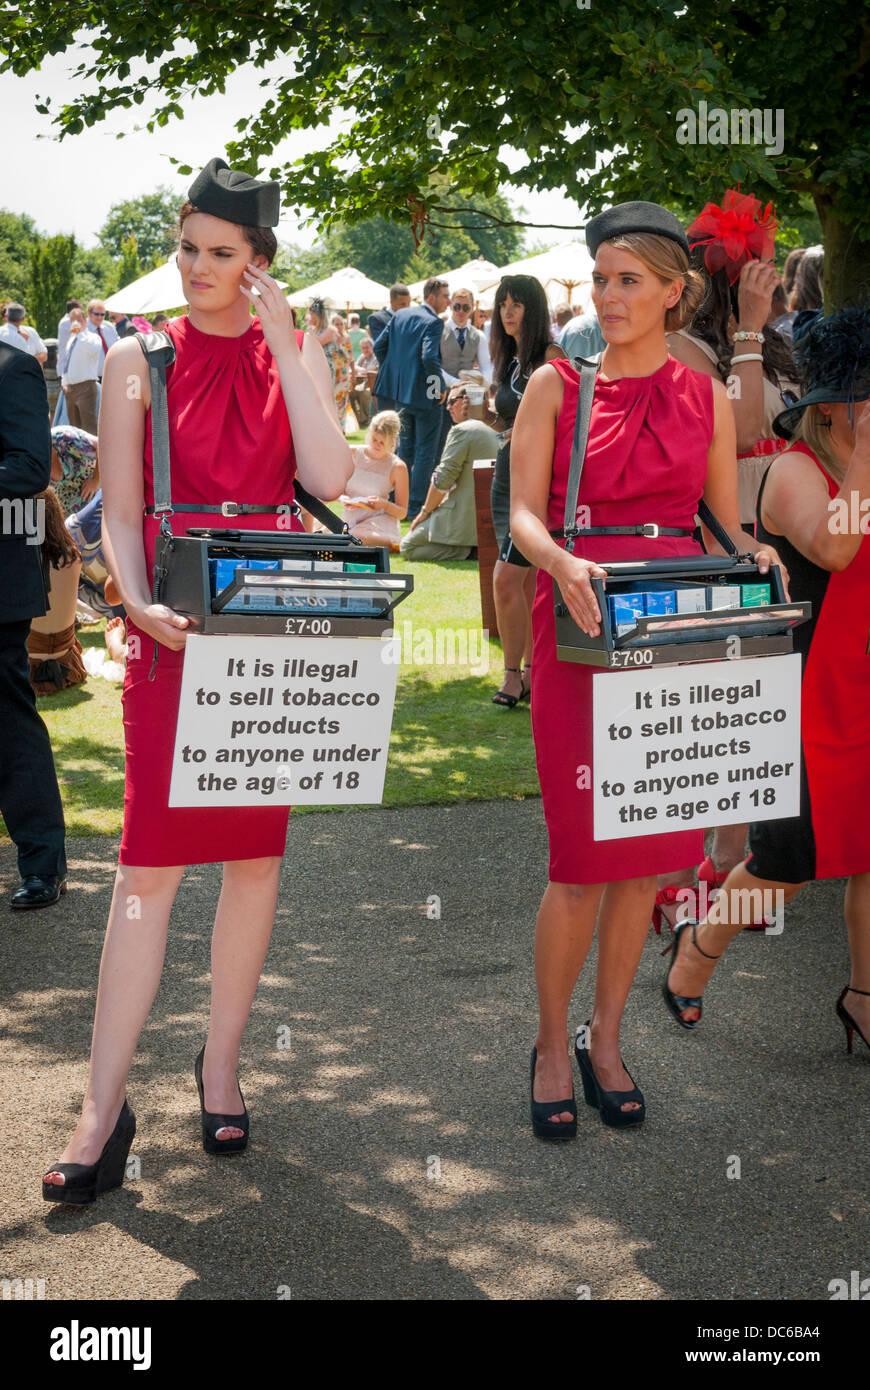 Cigarette Girls with underage prohibition signs at a racetrack. - Stock Image